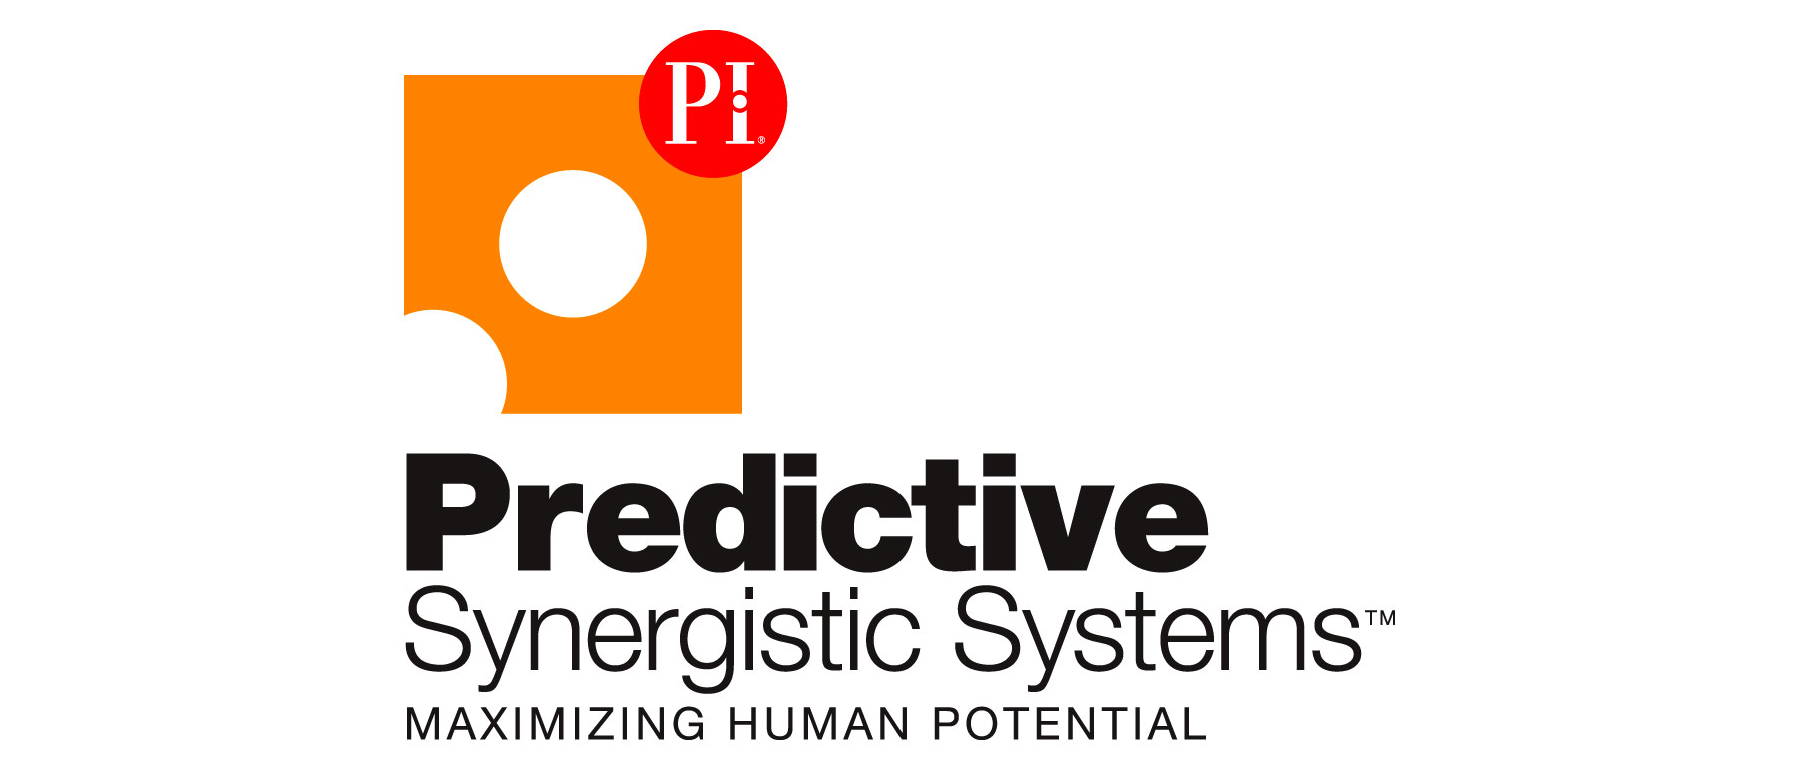 Predictive_Synergistic_Systems.png